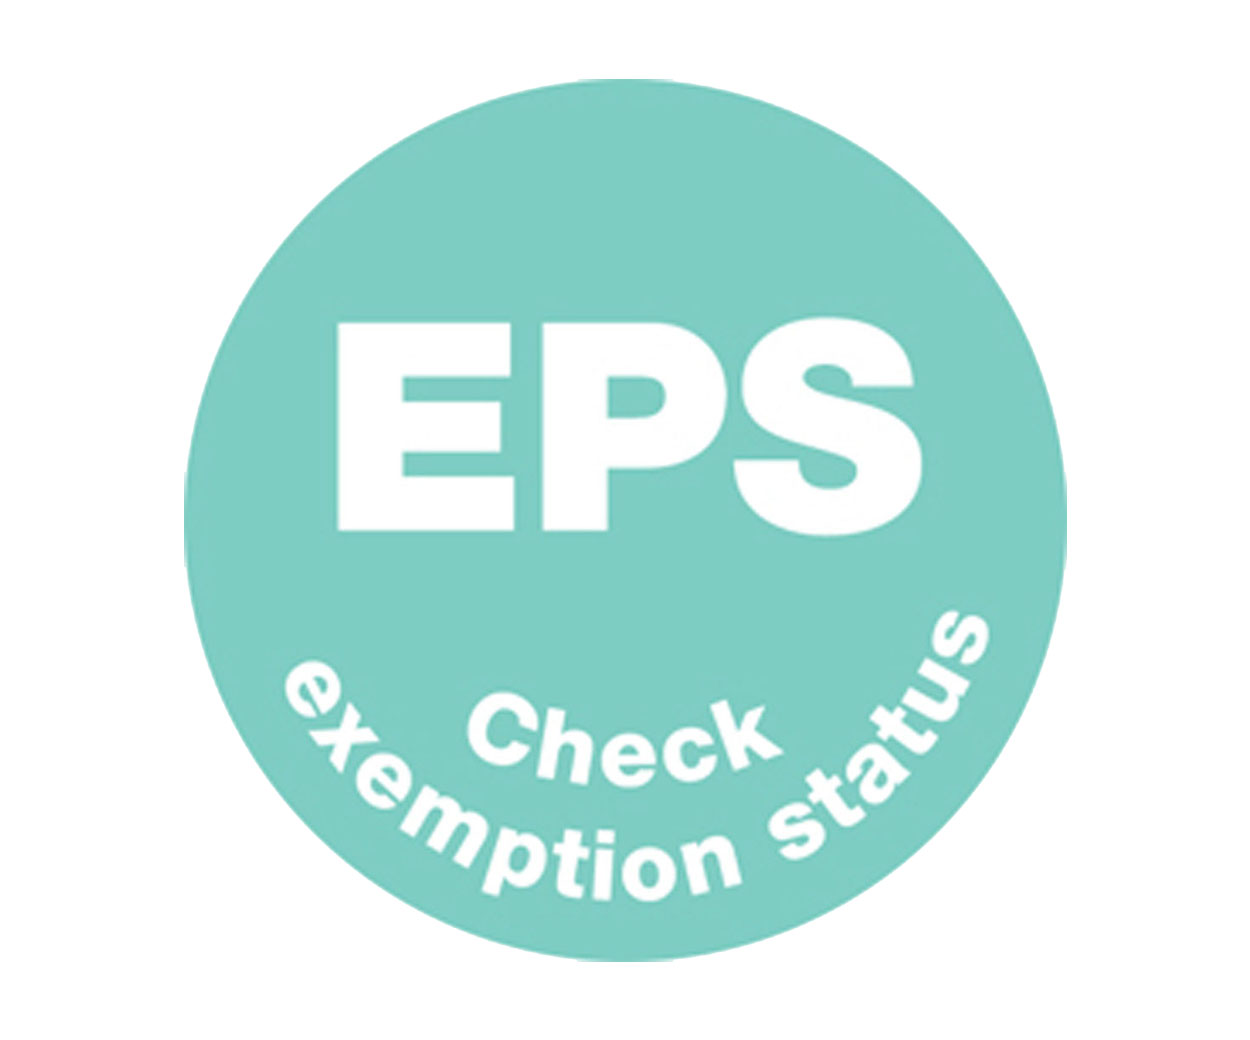 EPS Prescription Alert Sticker